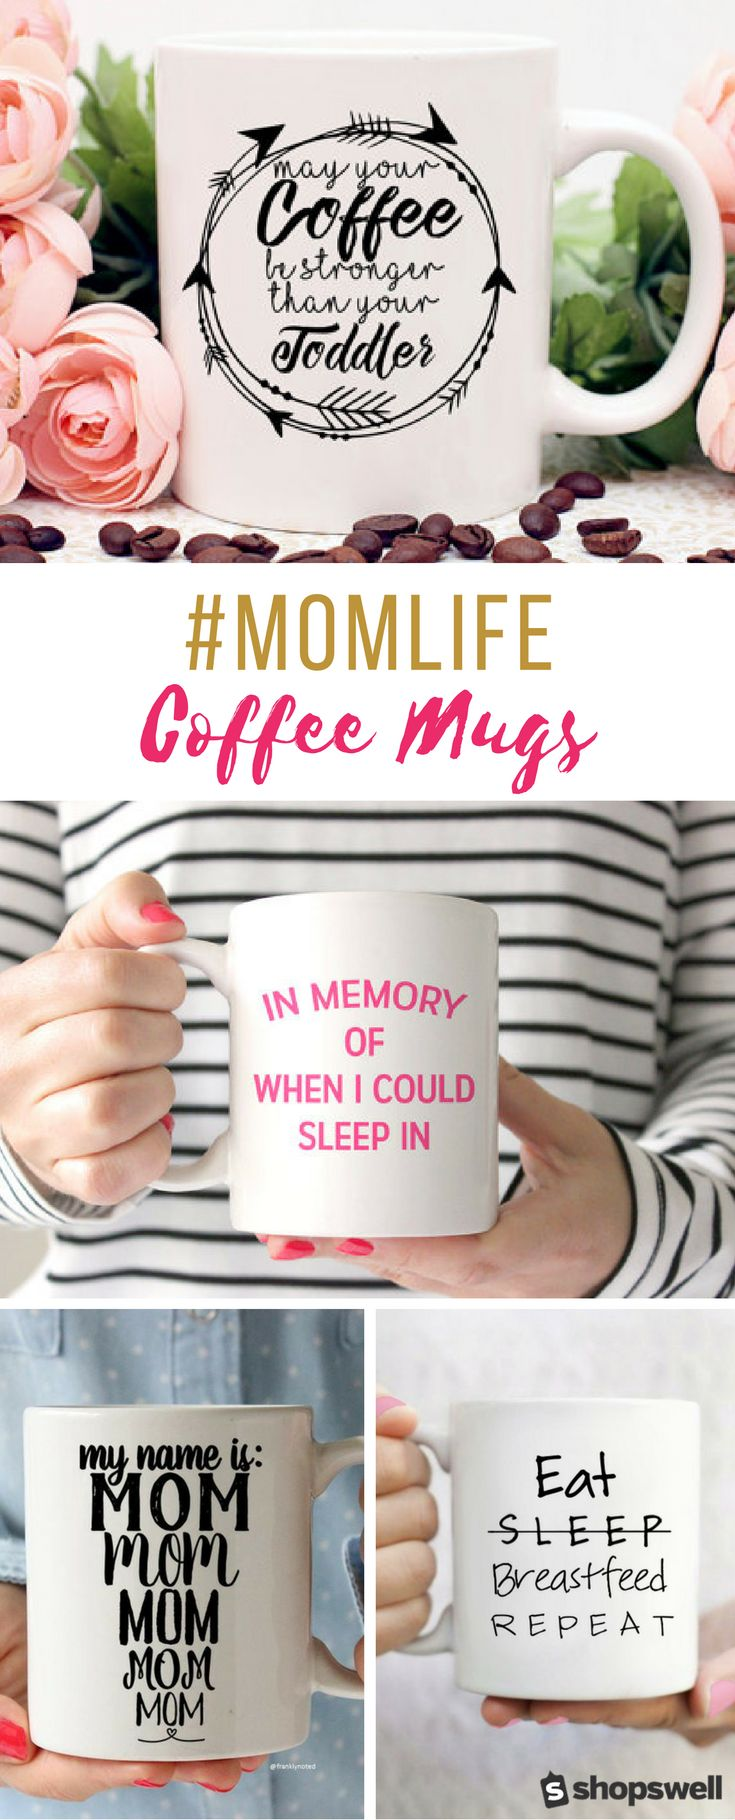 Because moms the world over run on coffee and sometimes wine.